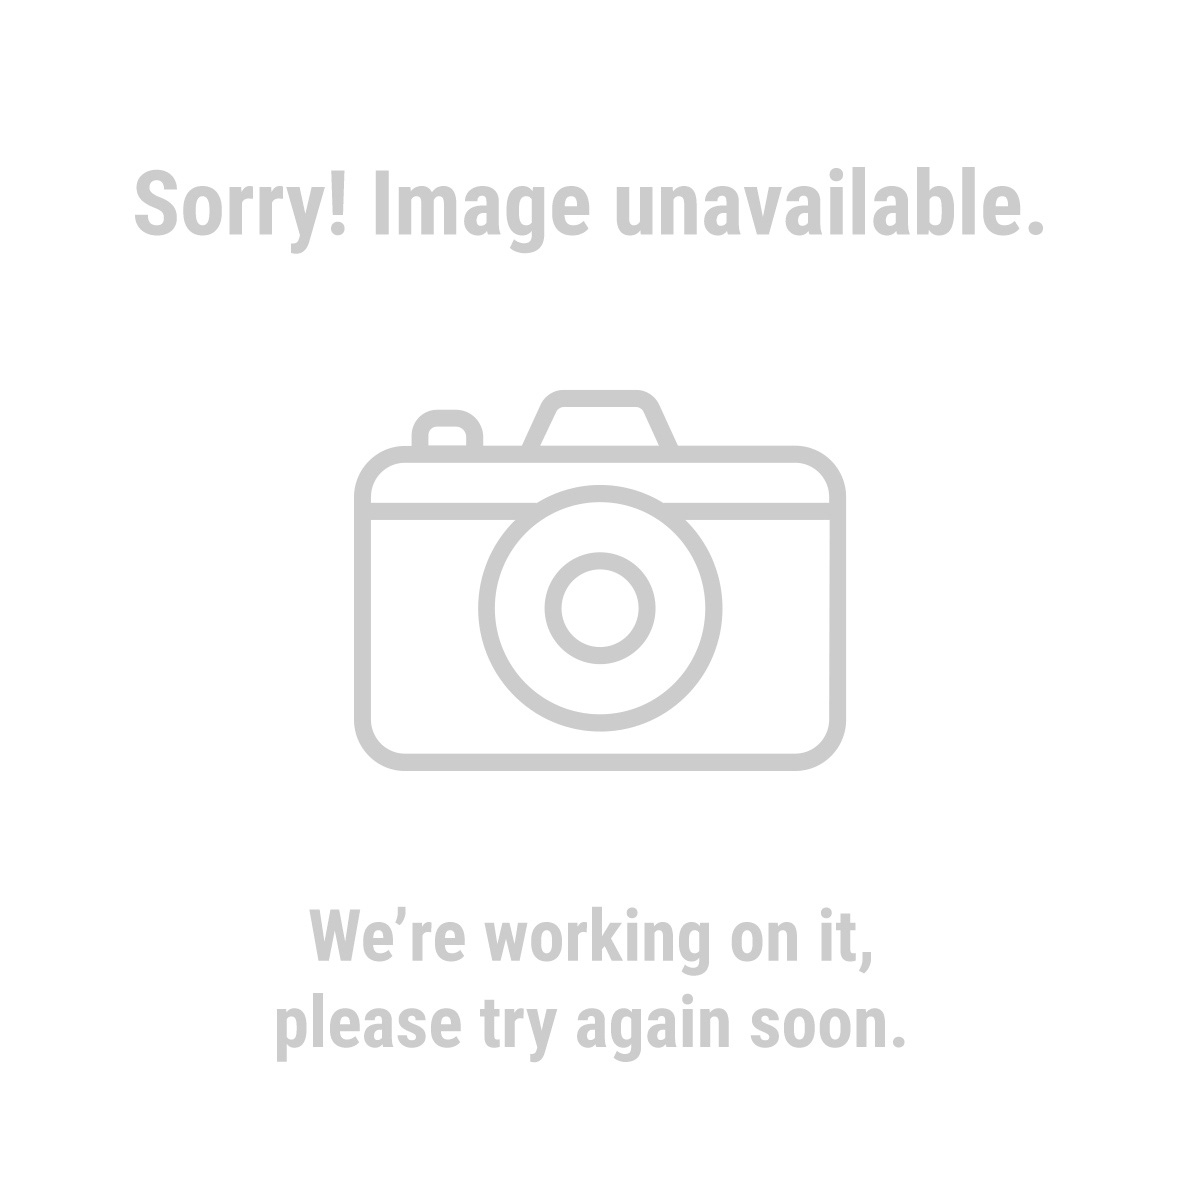 Drummond 63407 1 HP Stainless Steel Shallow Well Pump and Tank with Pressure Control Switch -  950 GPH